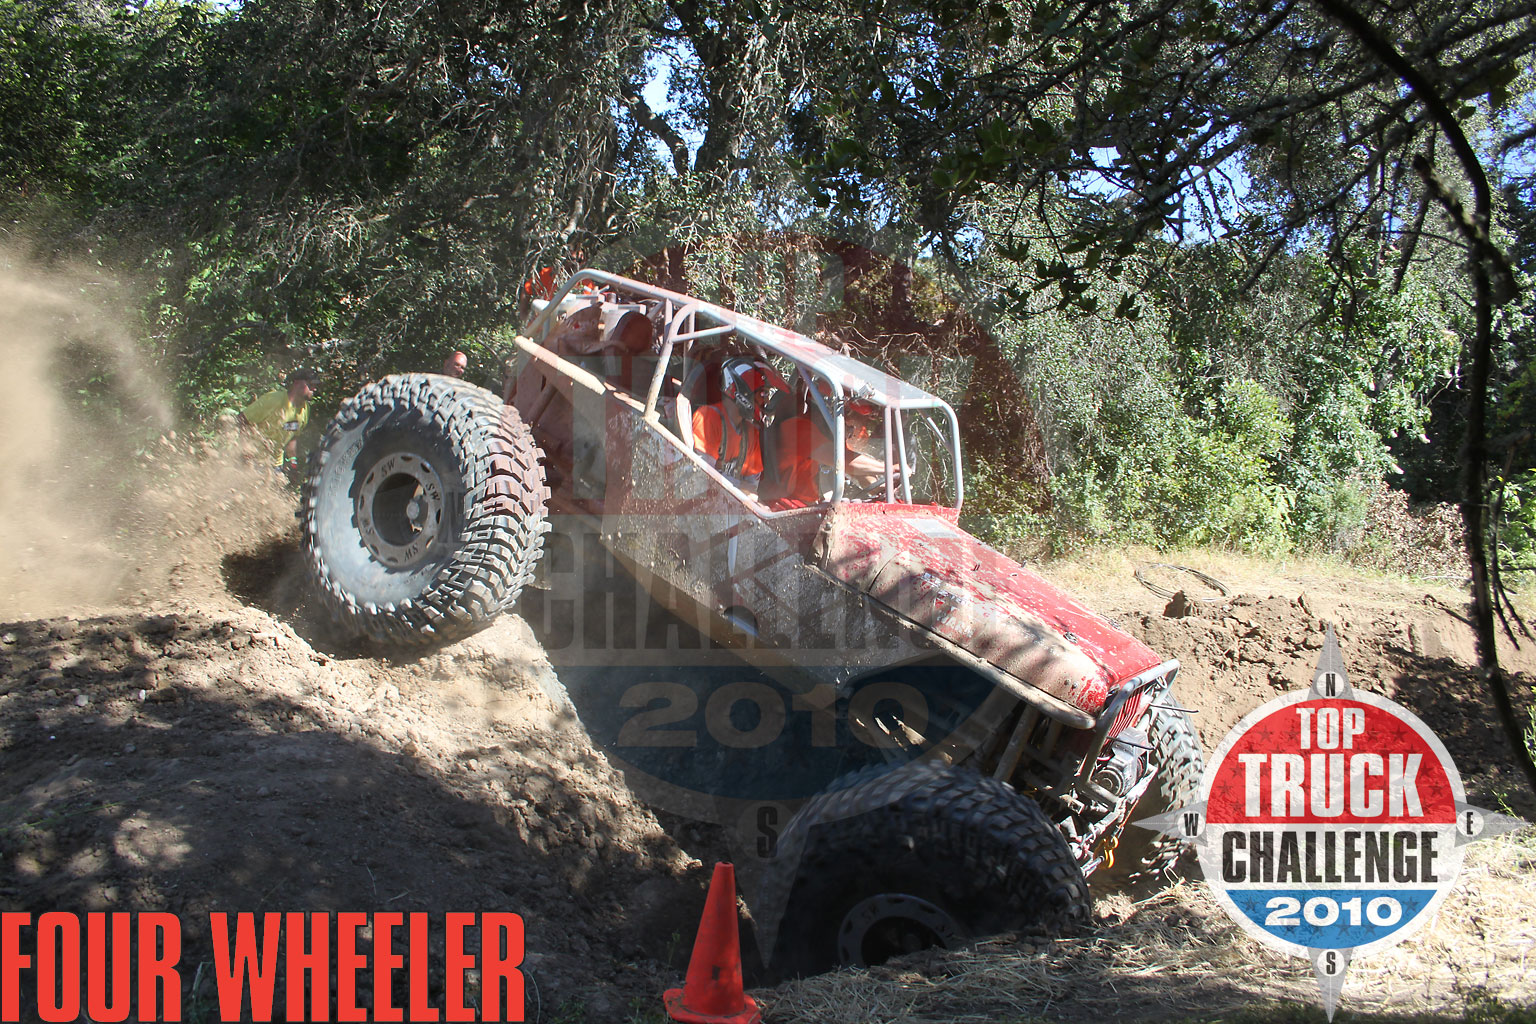 2010 Top Truck Challenge Hill Climb Mike Karwath 2009 Tube Chassis Yj Buggy